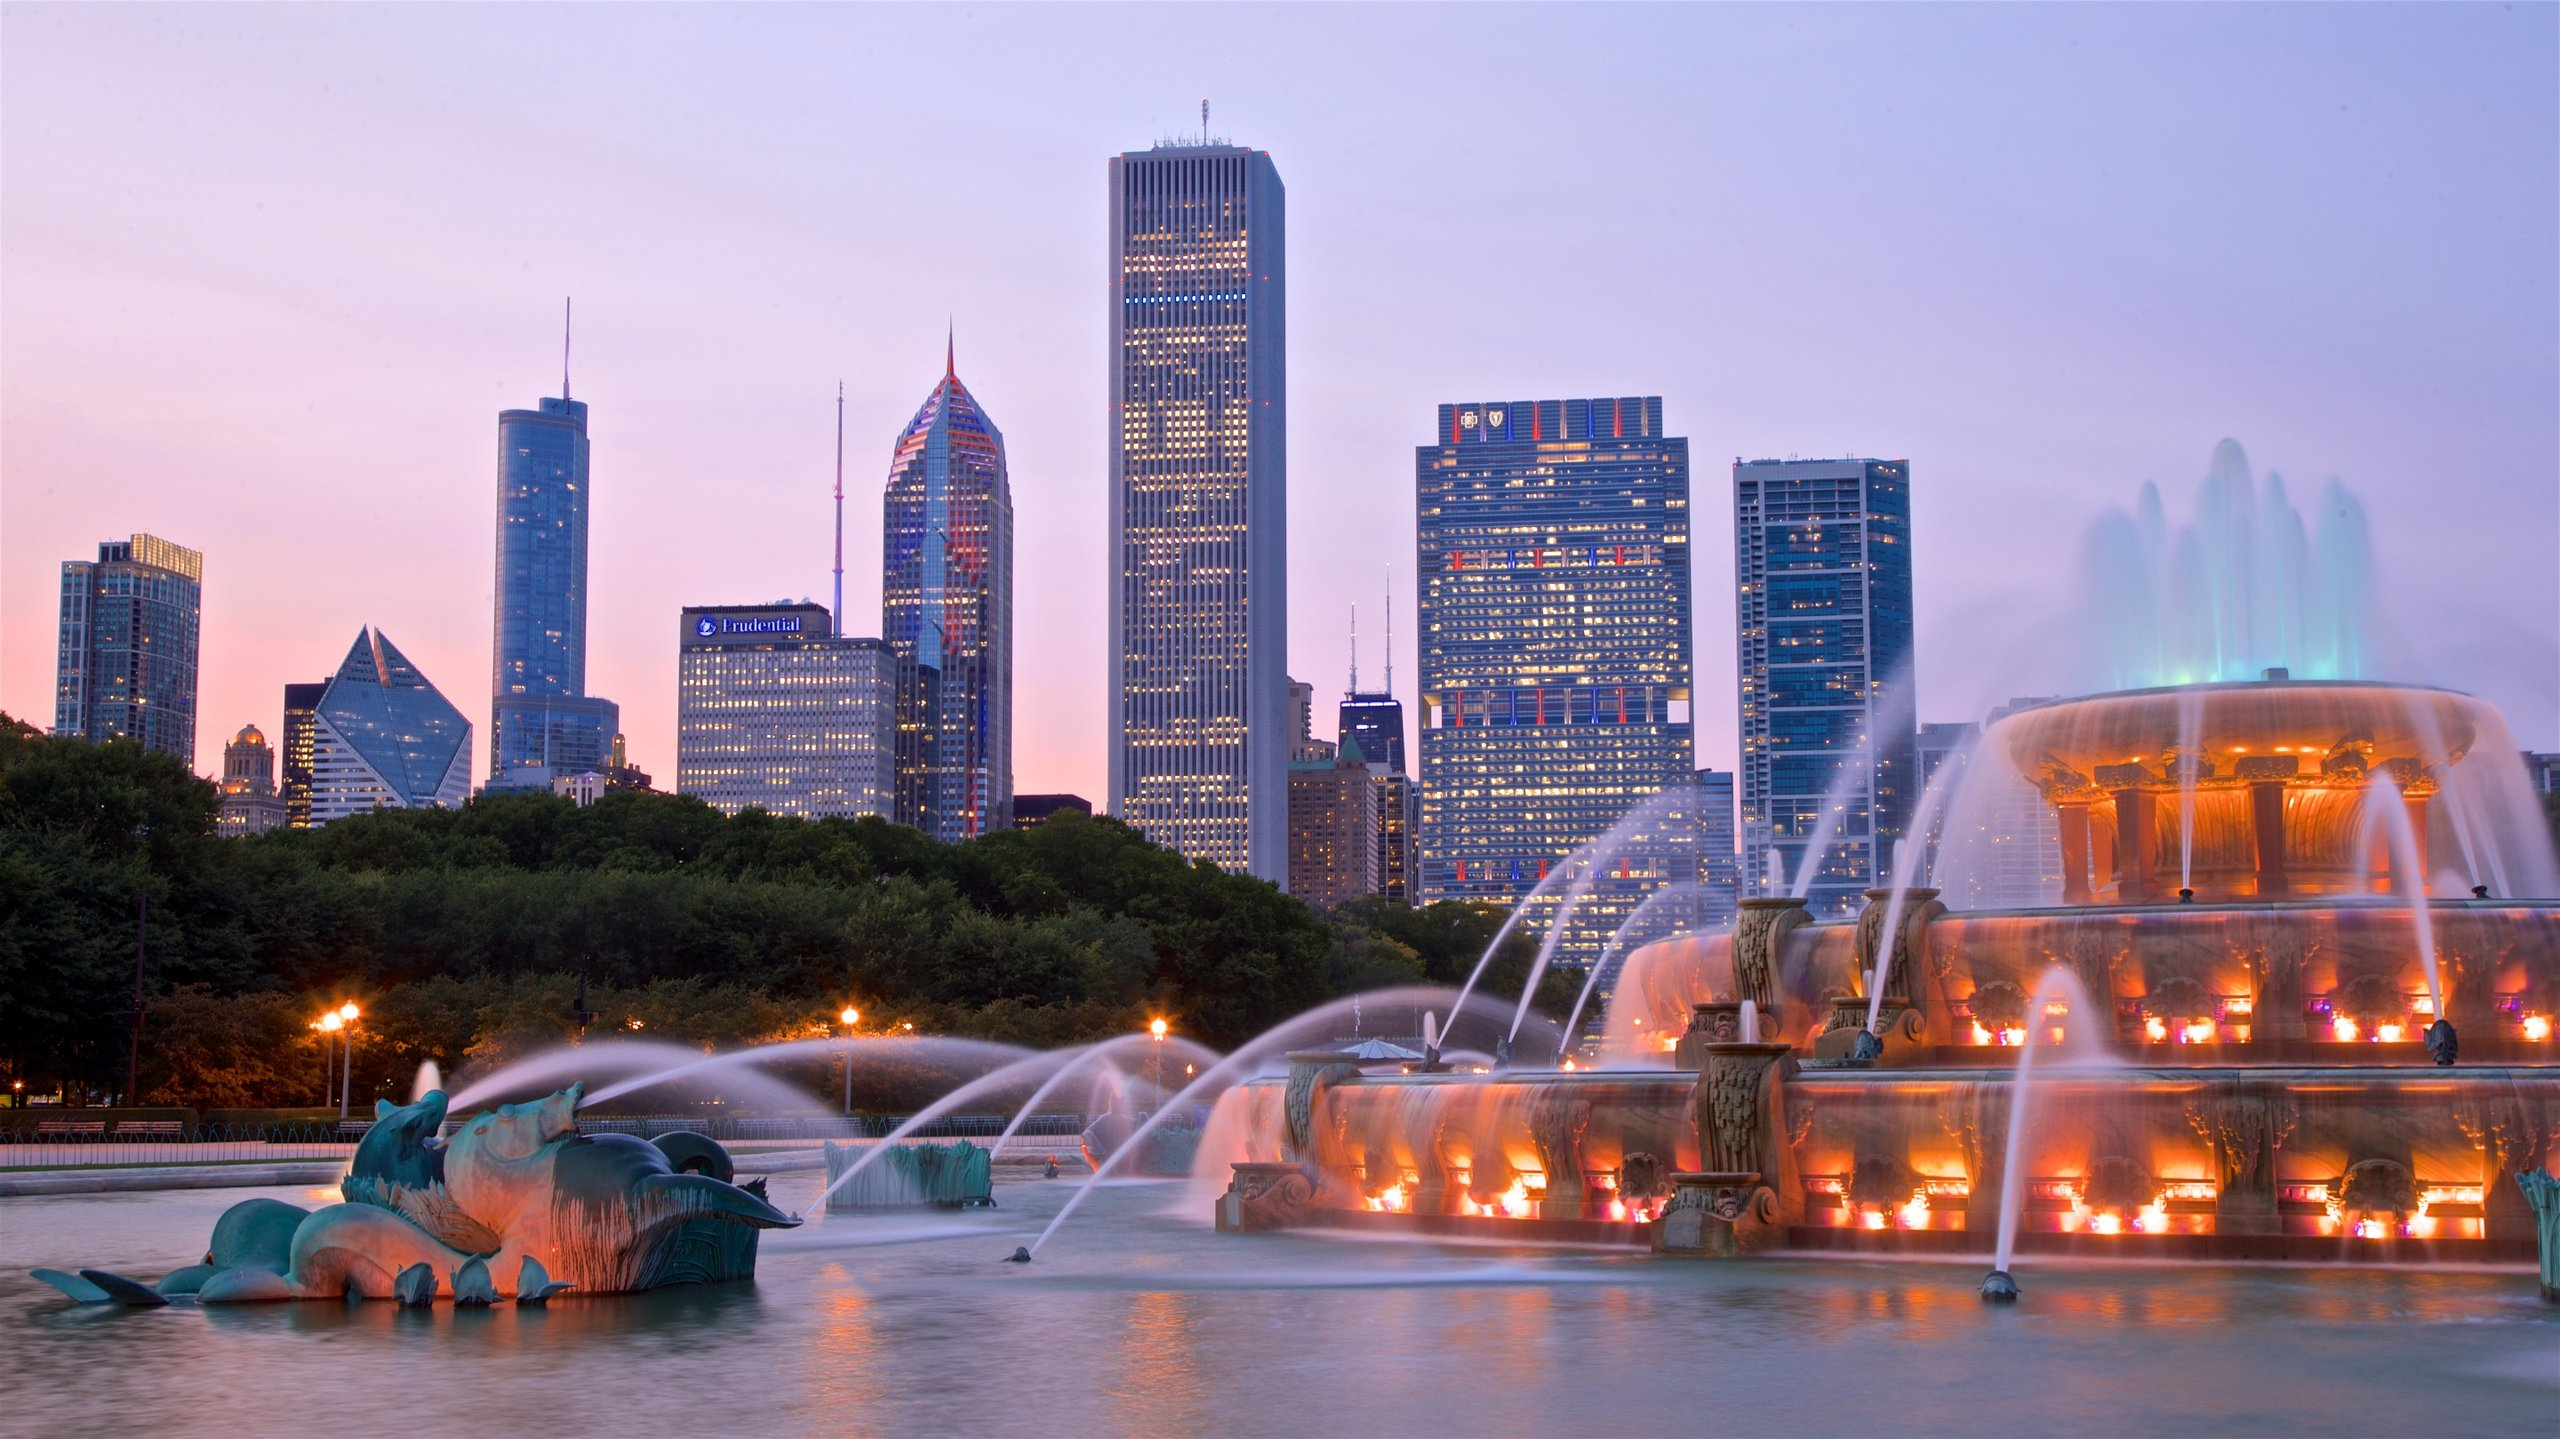 Hotels Closest To Buckingham Fountain